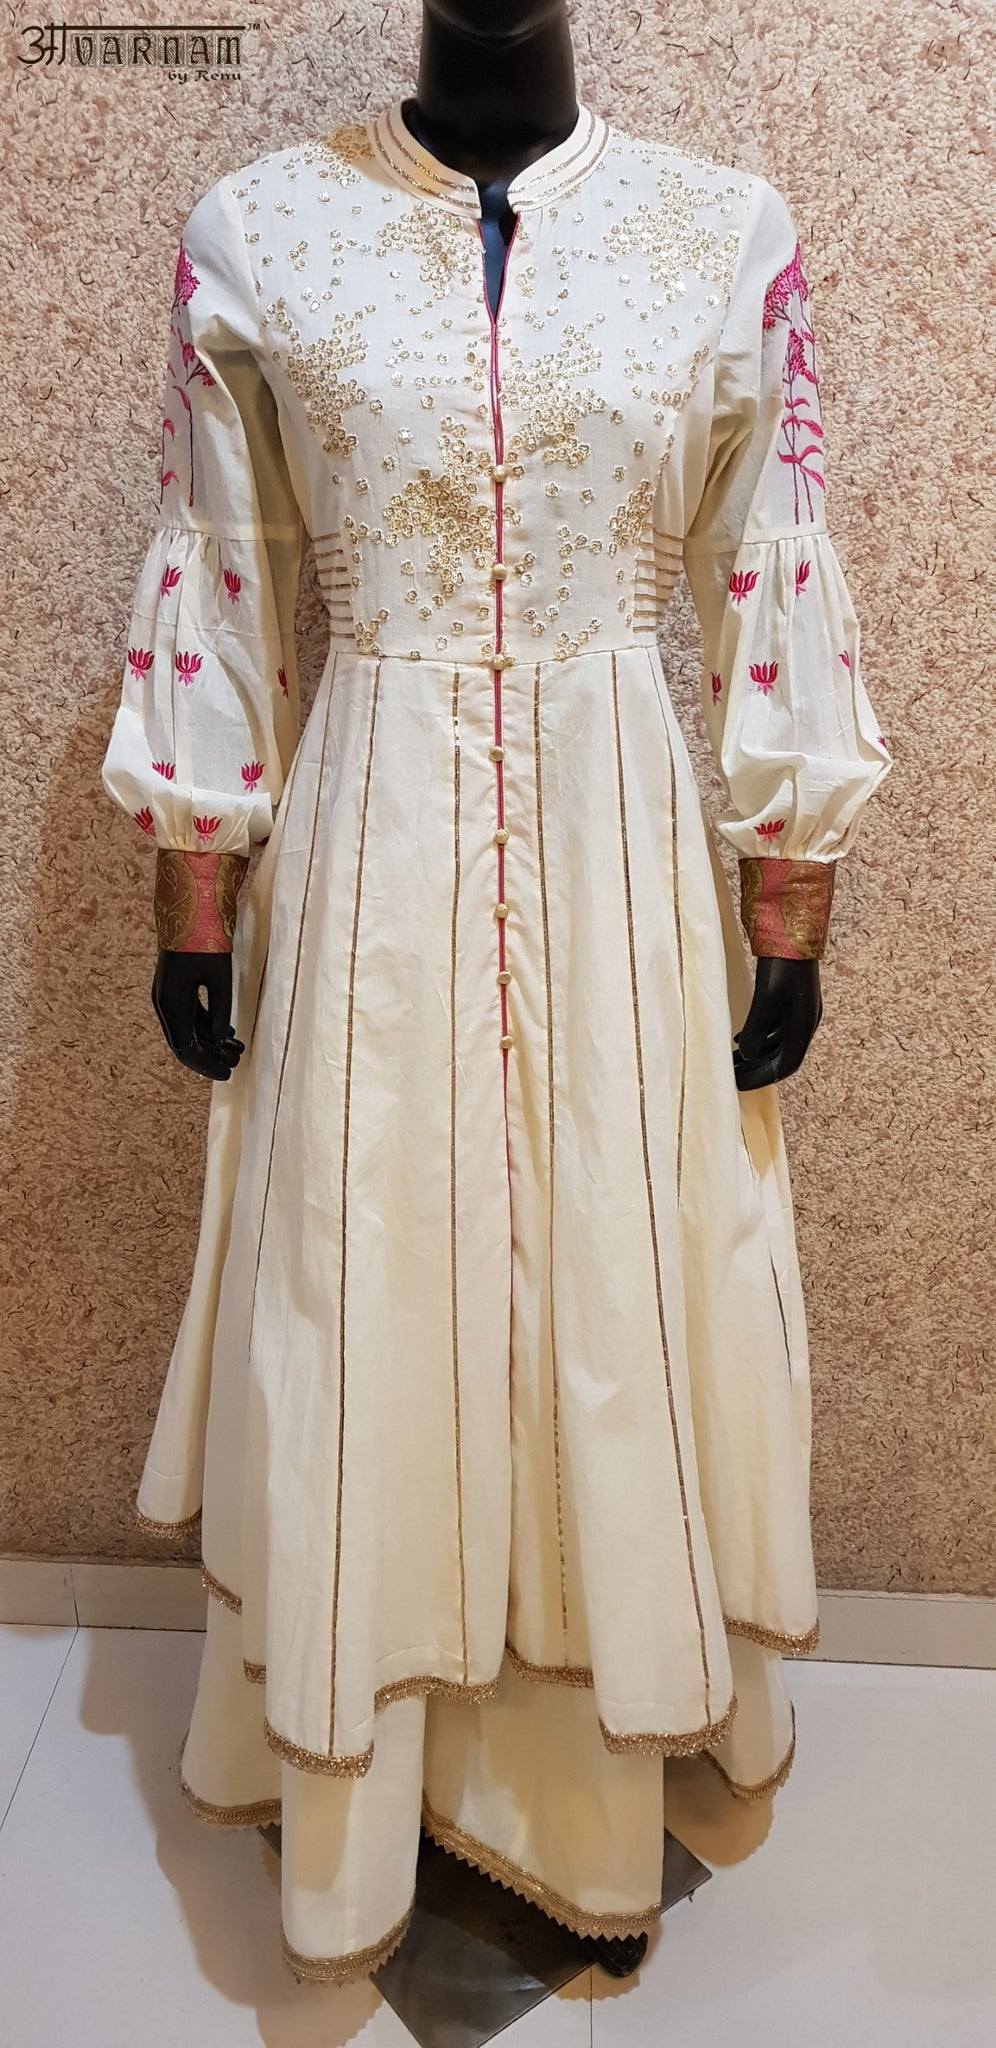 Aavarnam By Renu - Embroidered Gotta Work Kalidar Shirt With Kalidar Sharara - 2869D00048